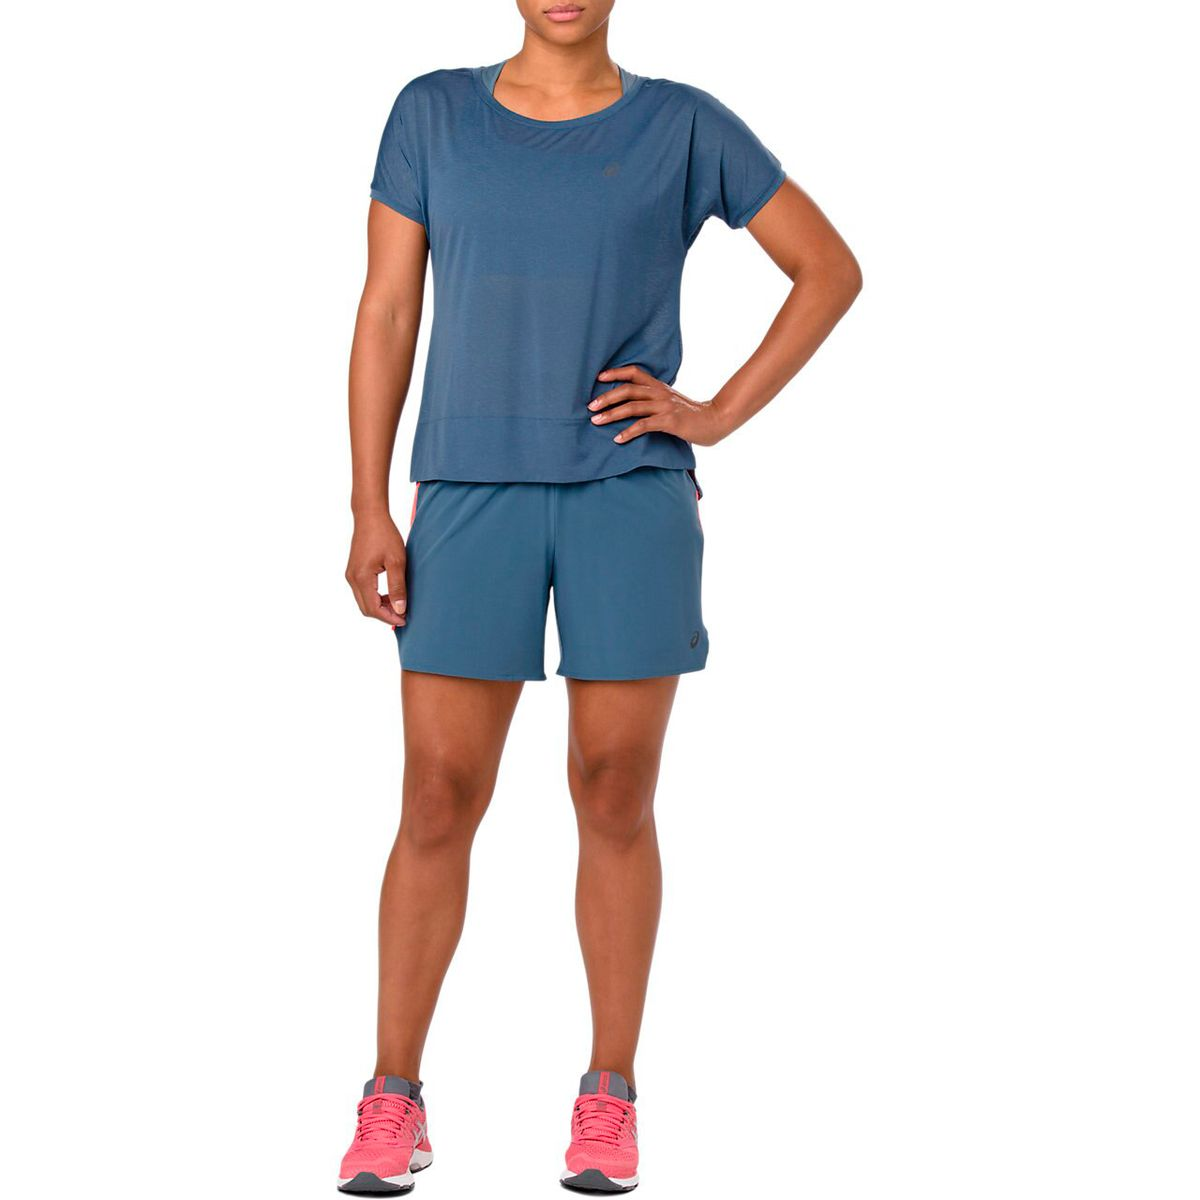 Camiseta-Asics-Crop-Top-Feminino